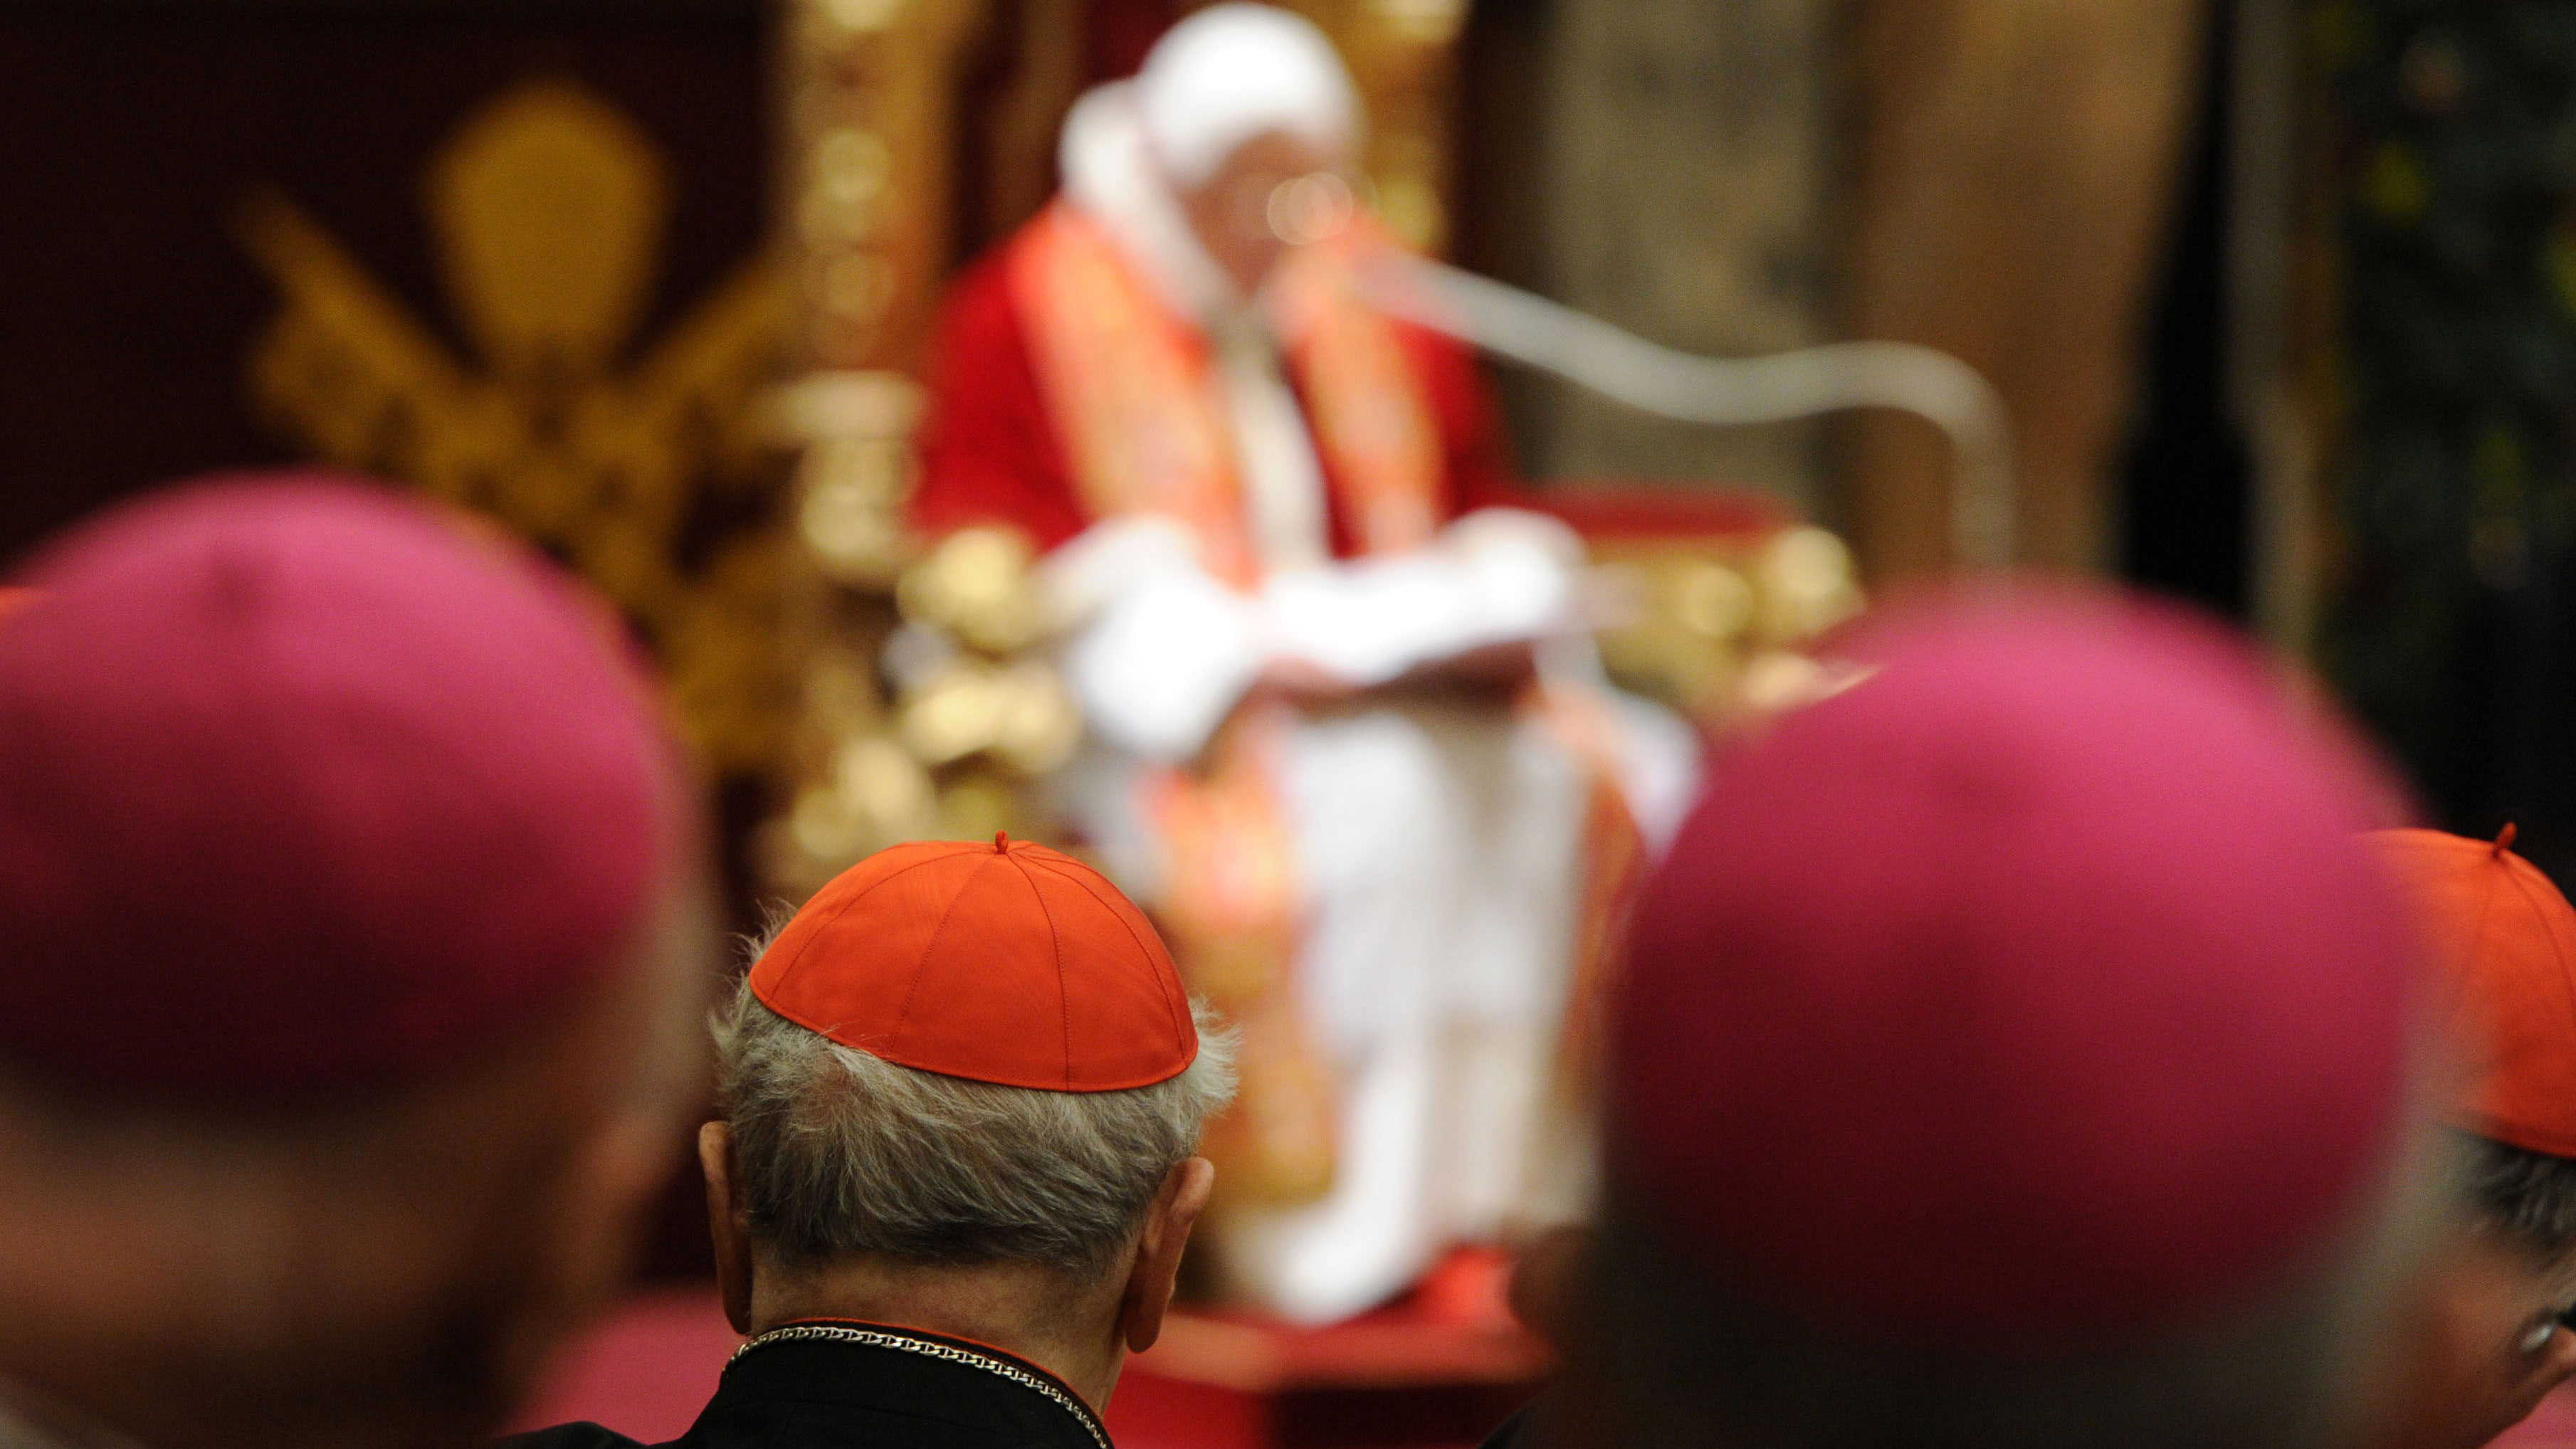 PHOTO: Here, the Pope is shown receiving the Roman Curia.